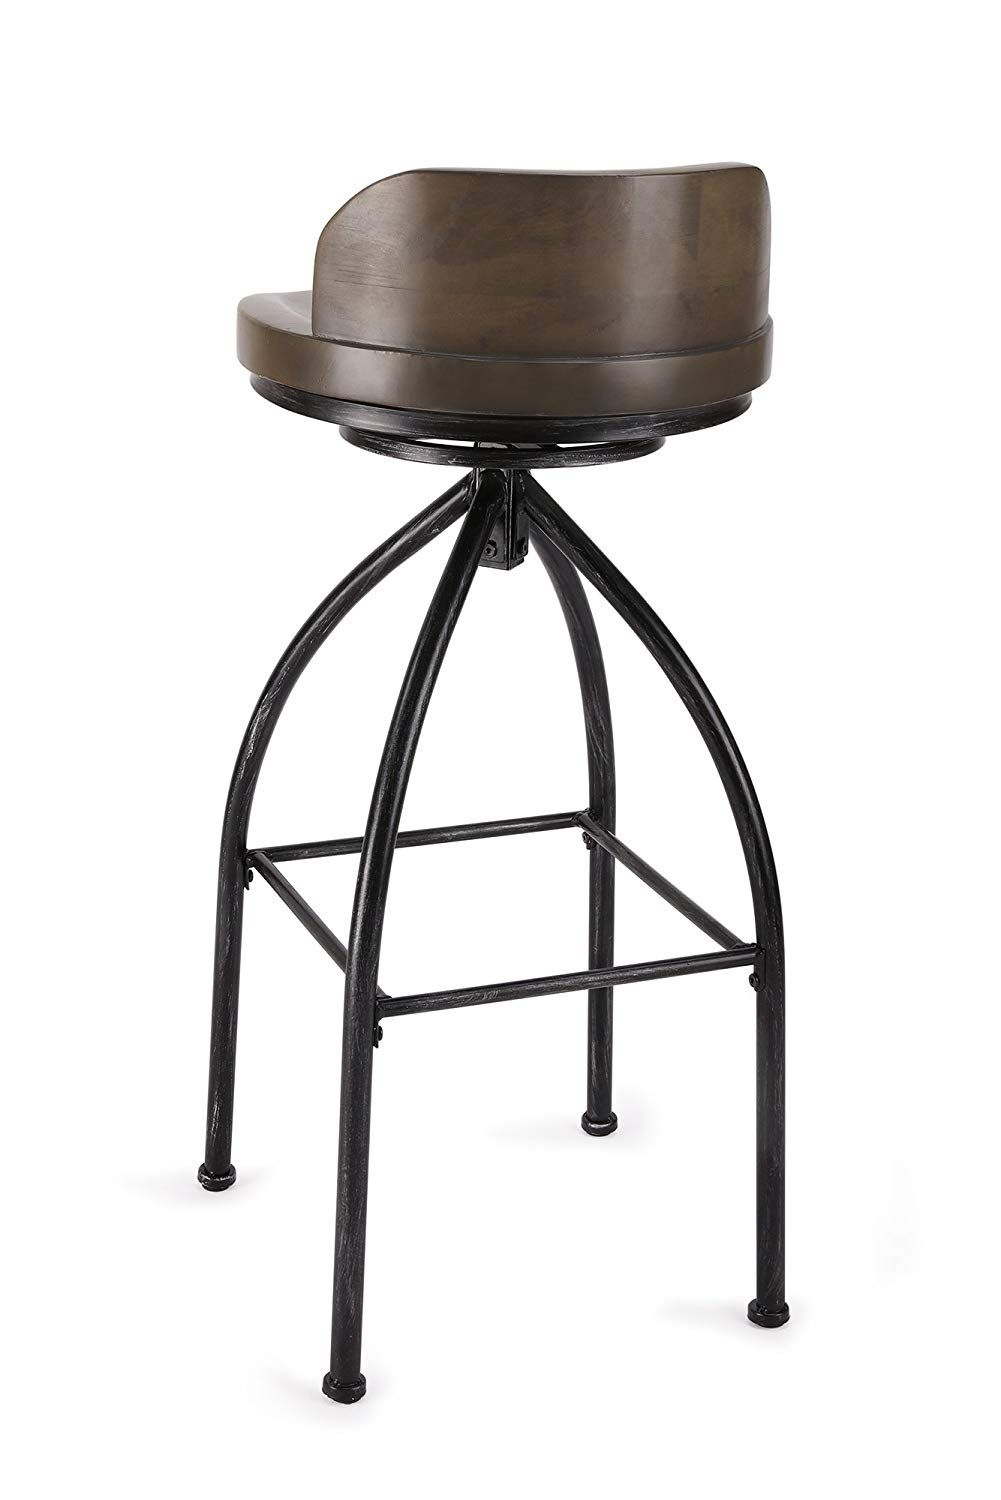 Fivegiven Rustic Industrial Bar Stools 30 Inch Bar Stool With Back Swivel Bar Height Wood And Metal Brown Stools With Backs Swivel Bar Stools Bar Stools